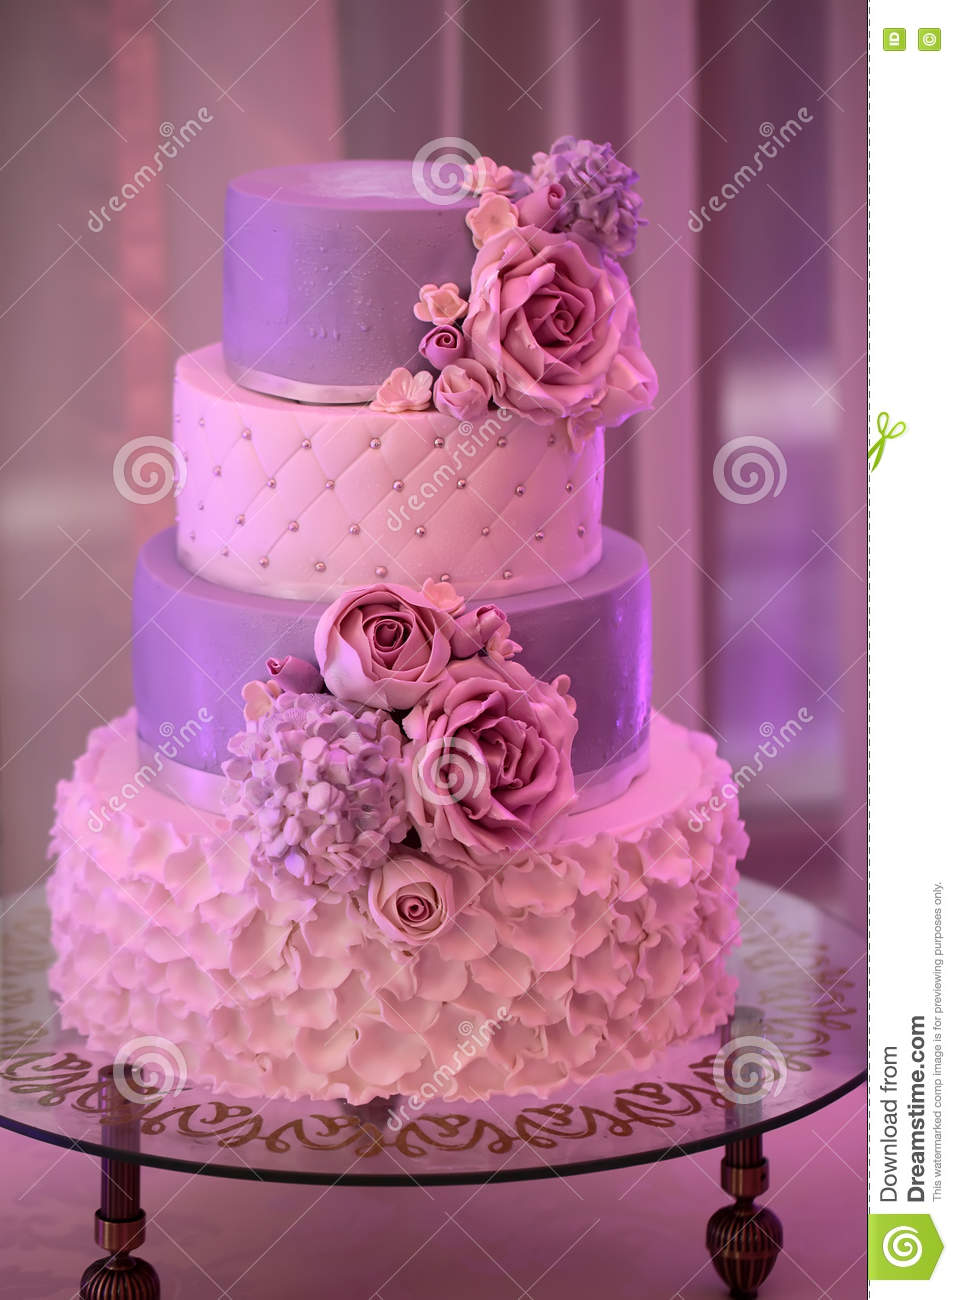 how to make layered wedding cake four layer wedding cake stock photo image of event 15970